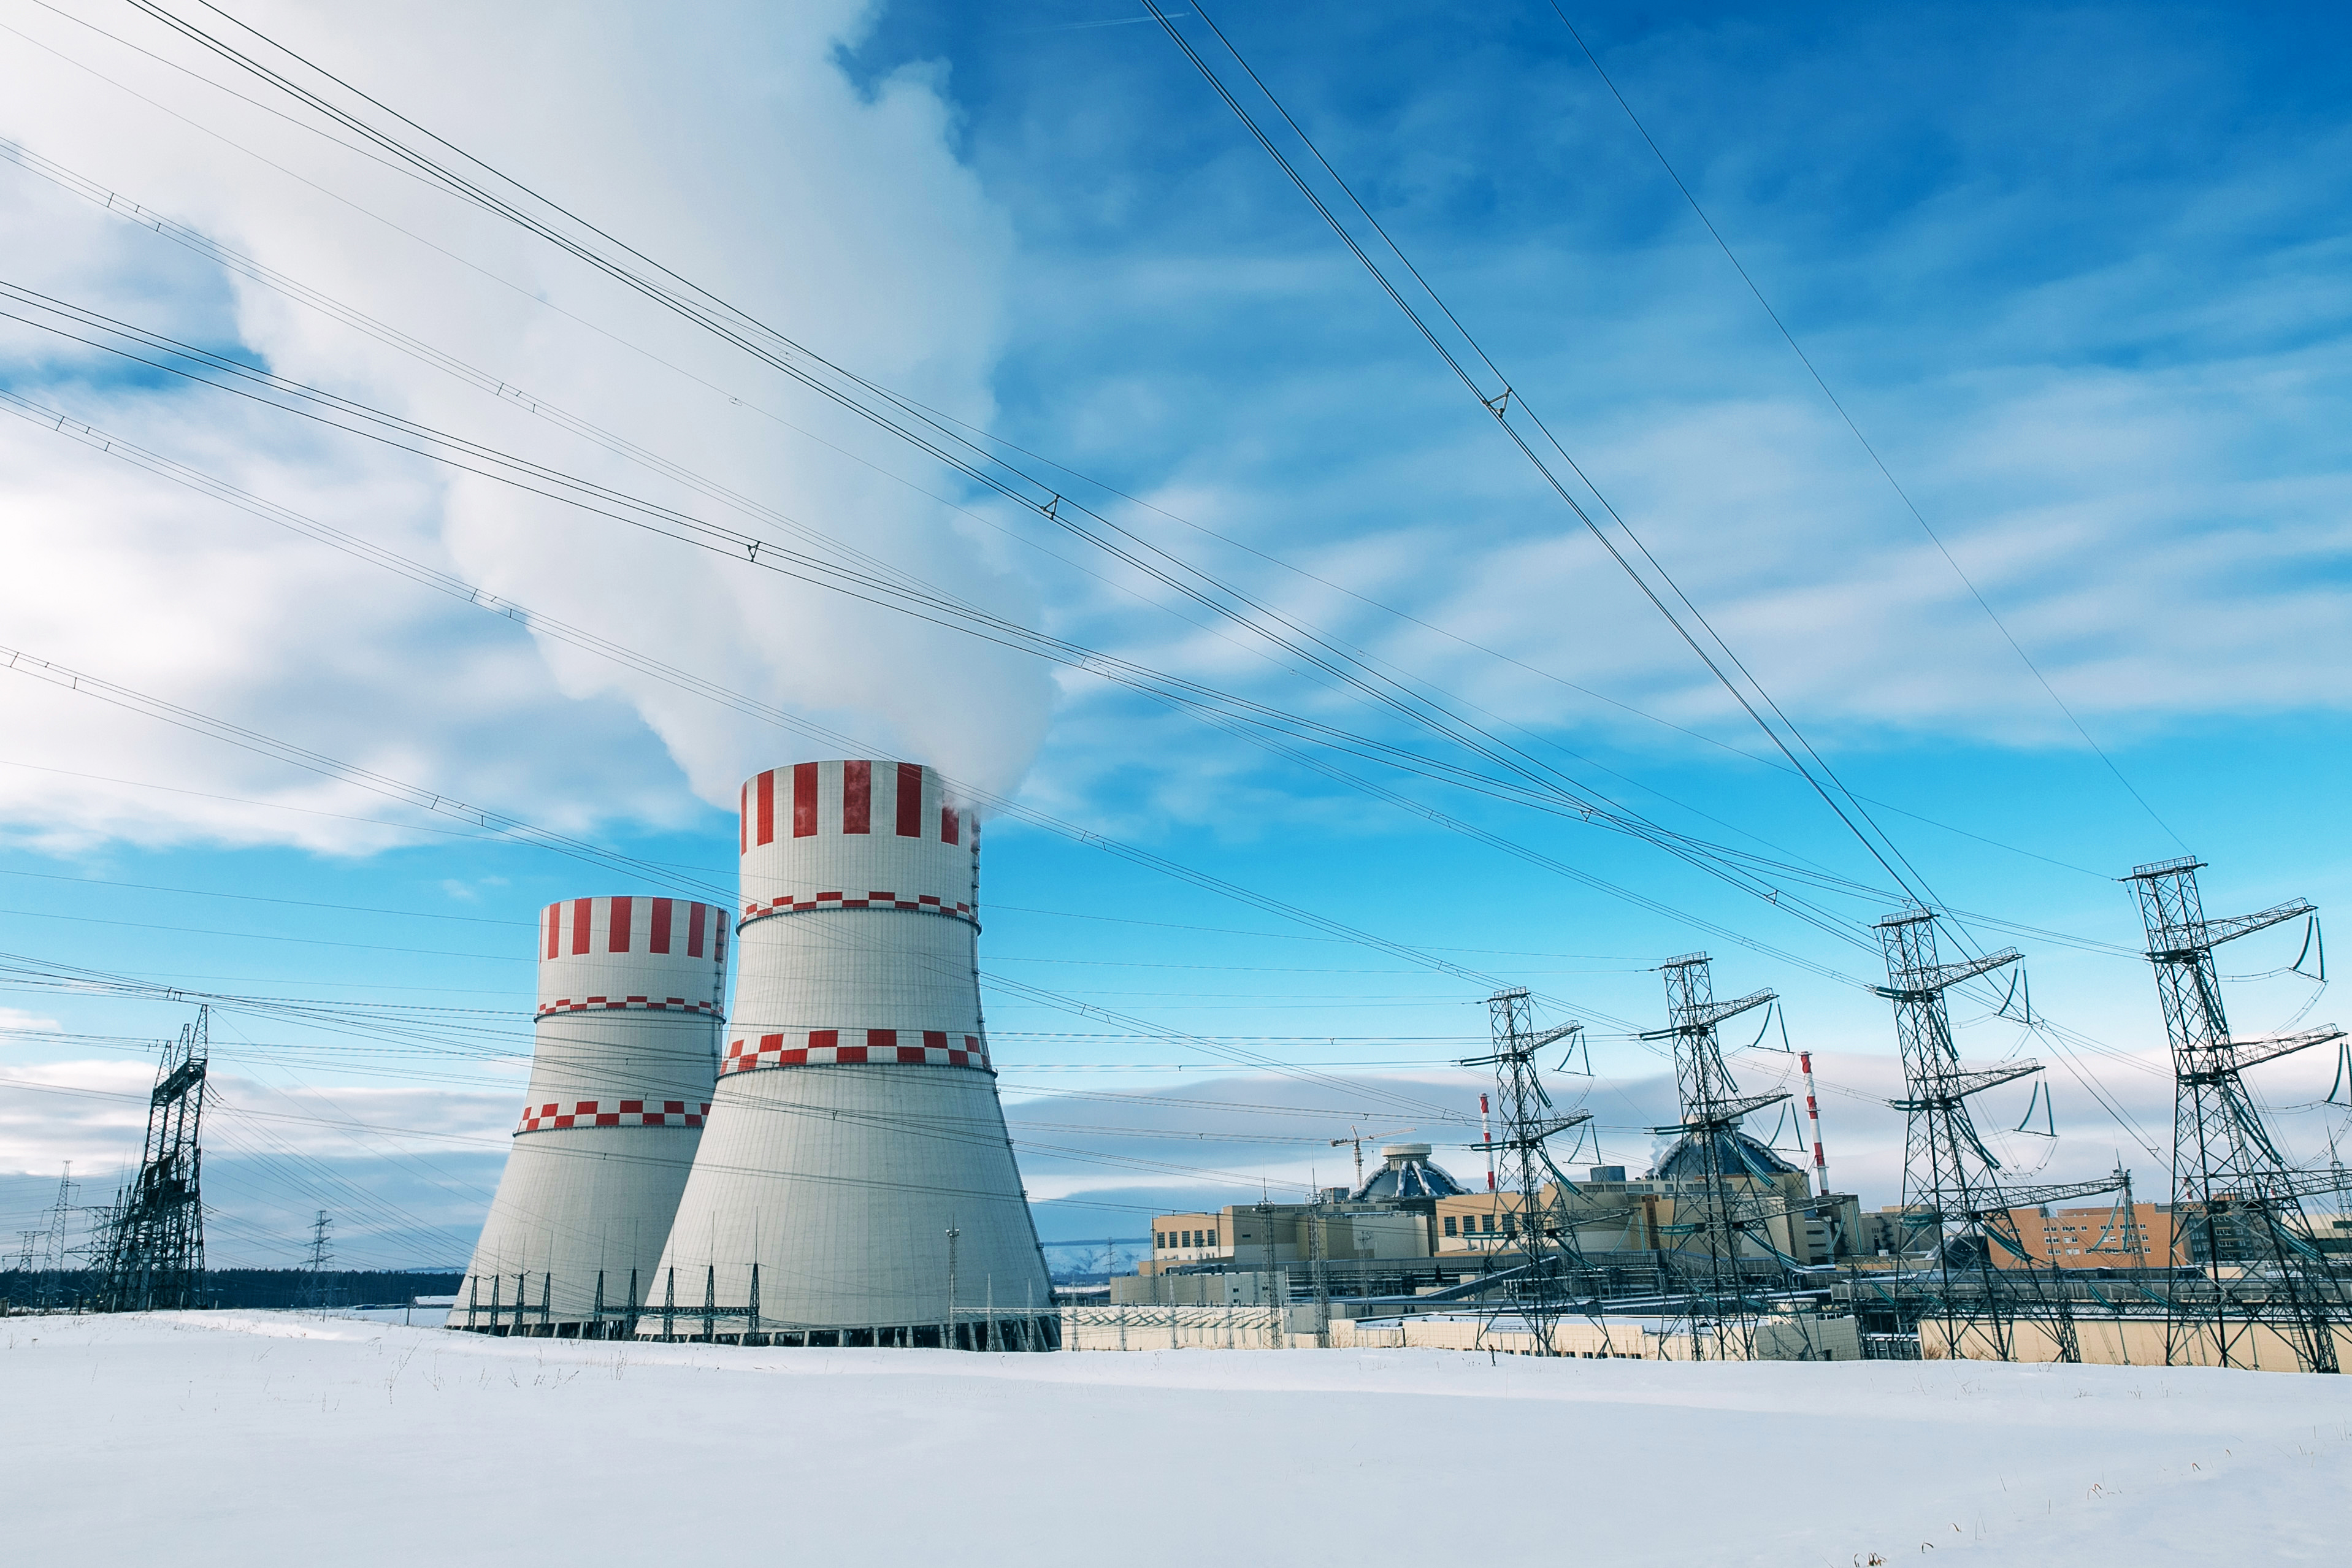 Rosenergoatom: initial fuel loading began right on schedule at unit No. 2, Novovoronezh-2